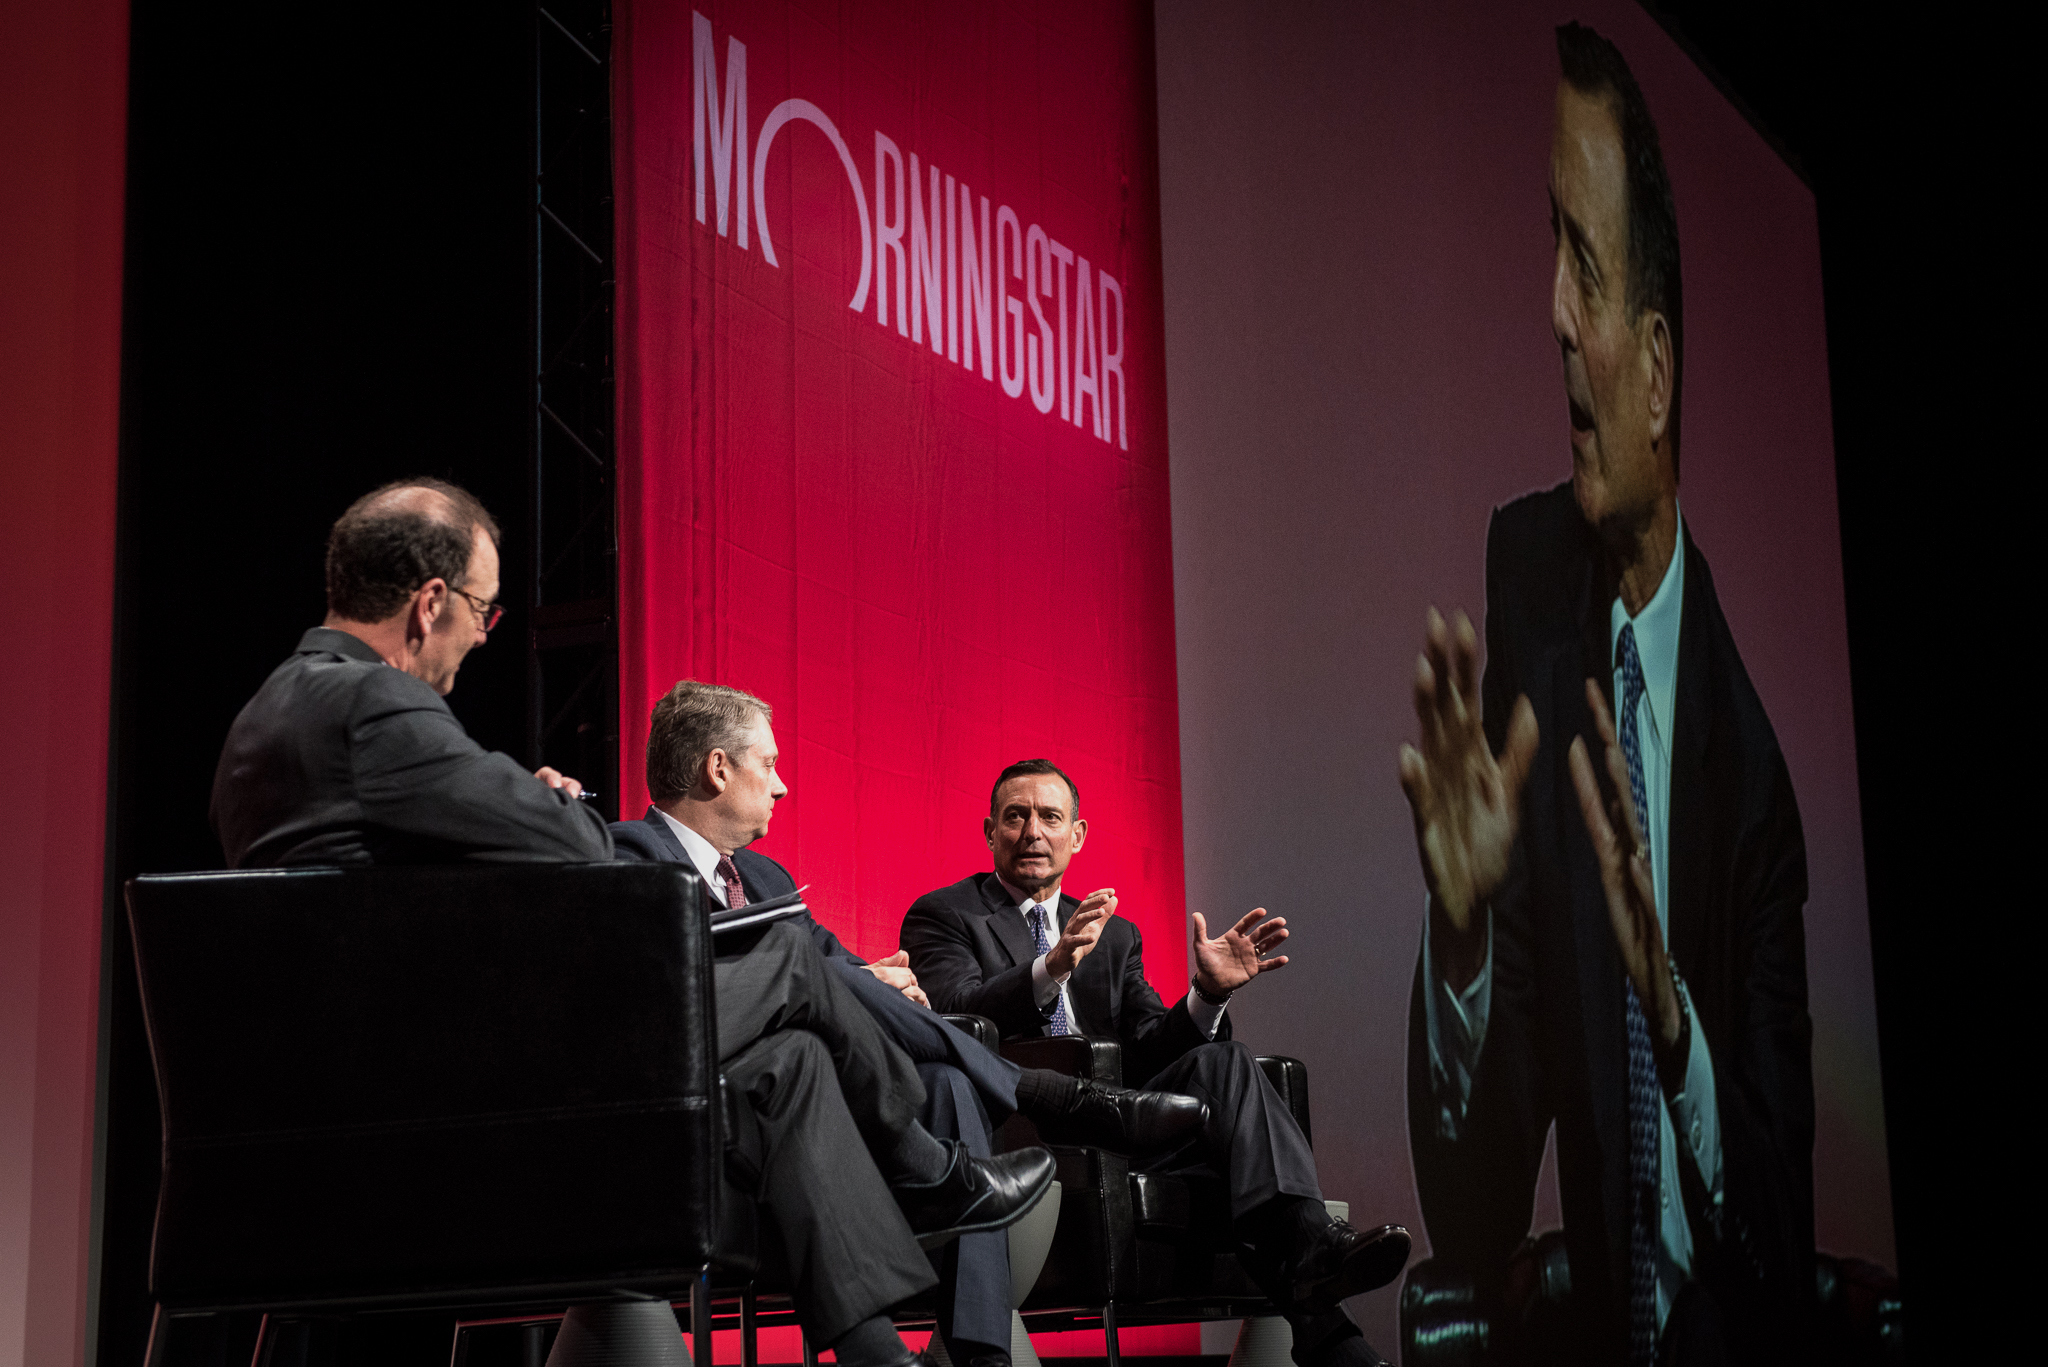 Pimco Chief Executive Officer Douglas Hodge And Chief Investment Officer Daniel Ivascyn Speak At The Morningstar Investors Conference